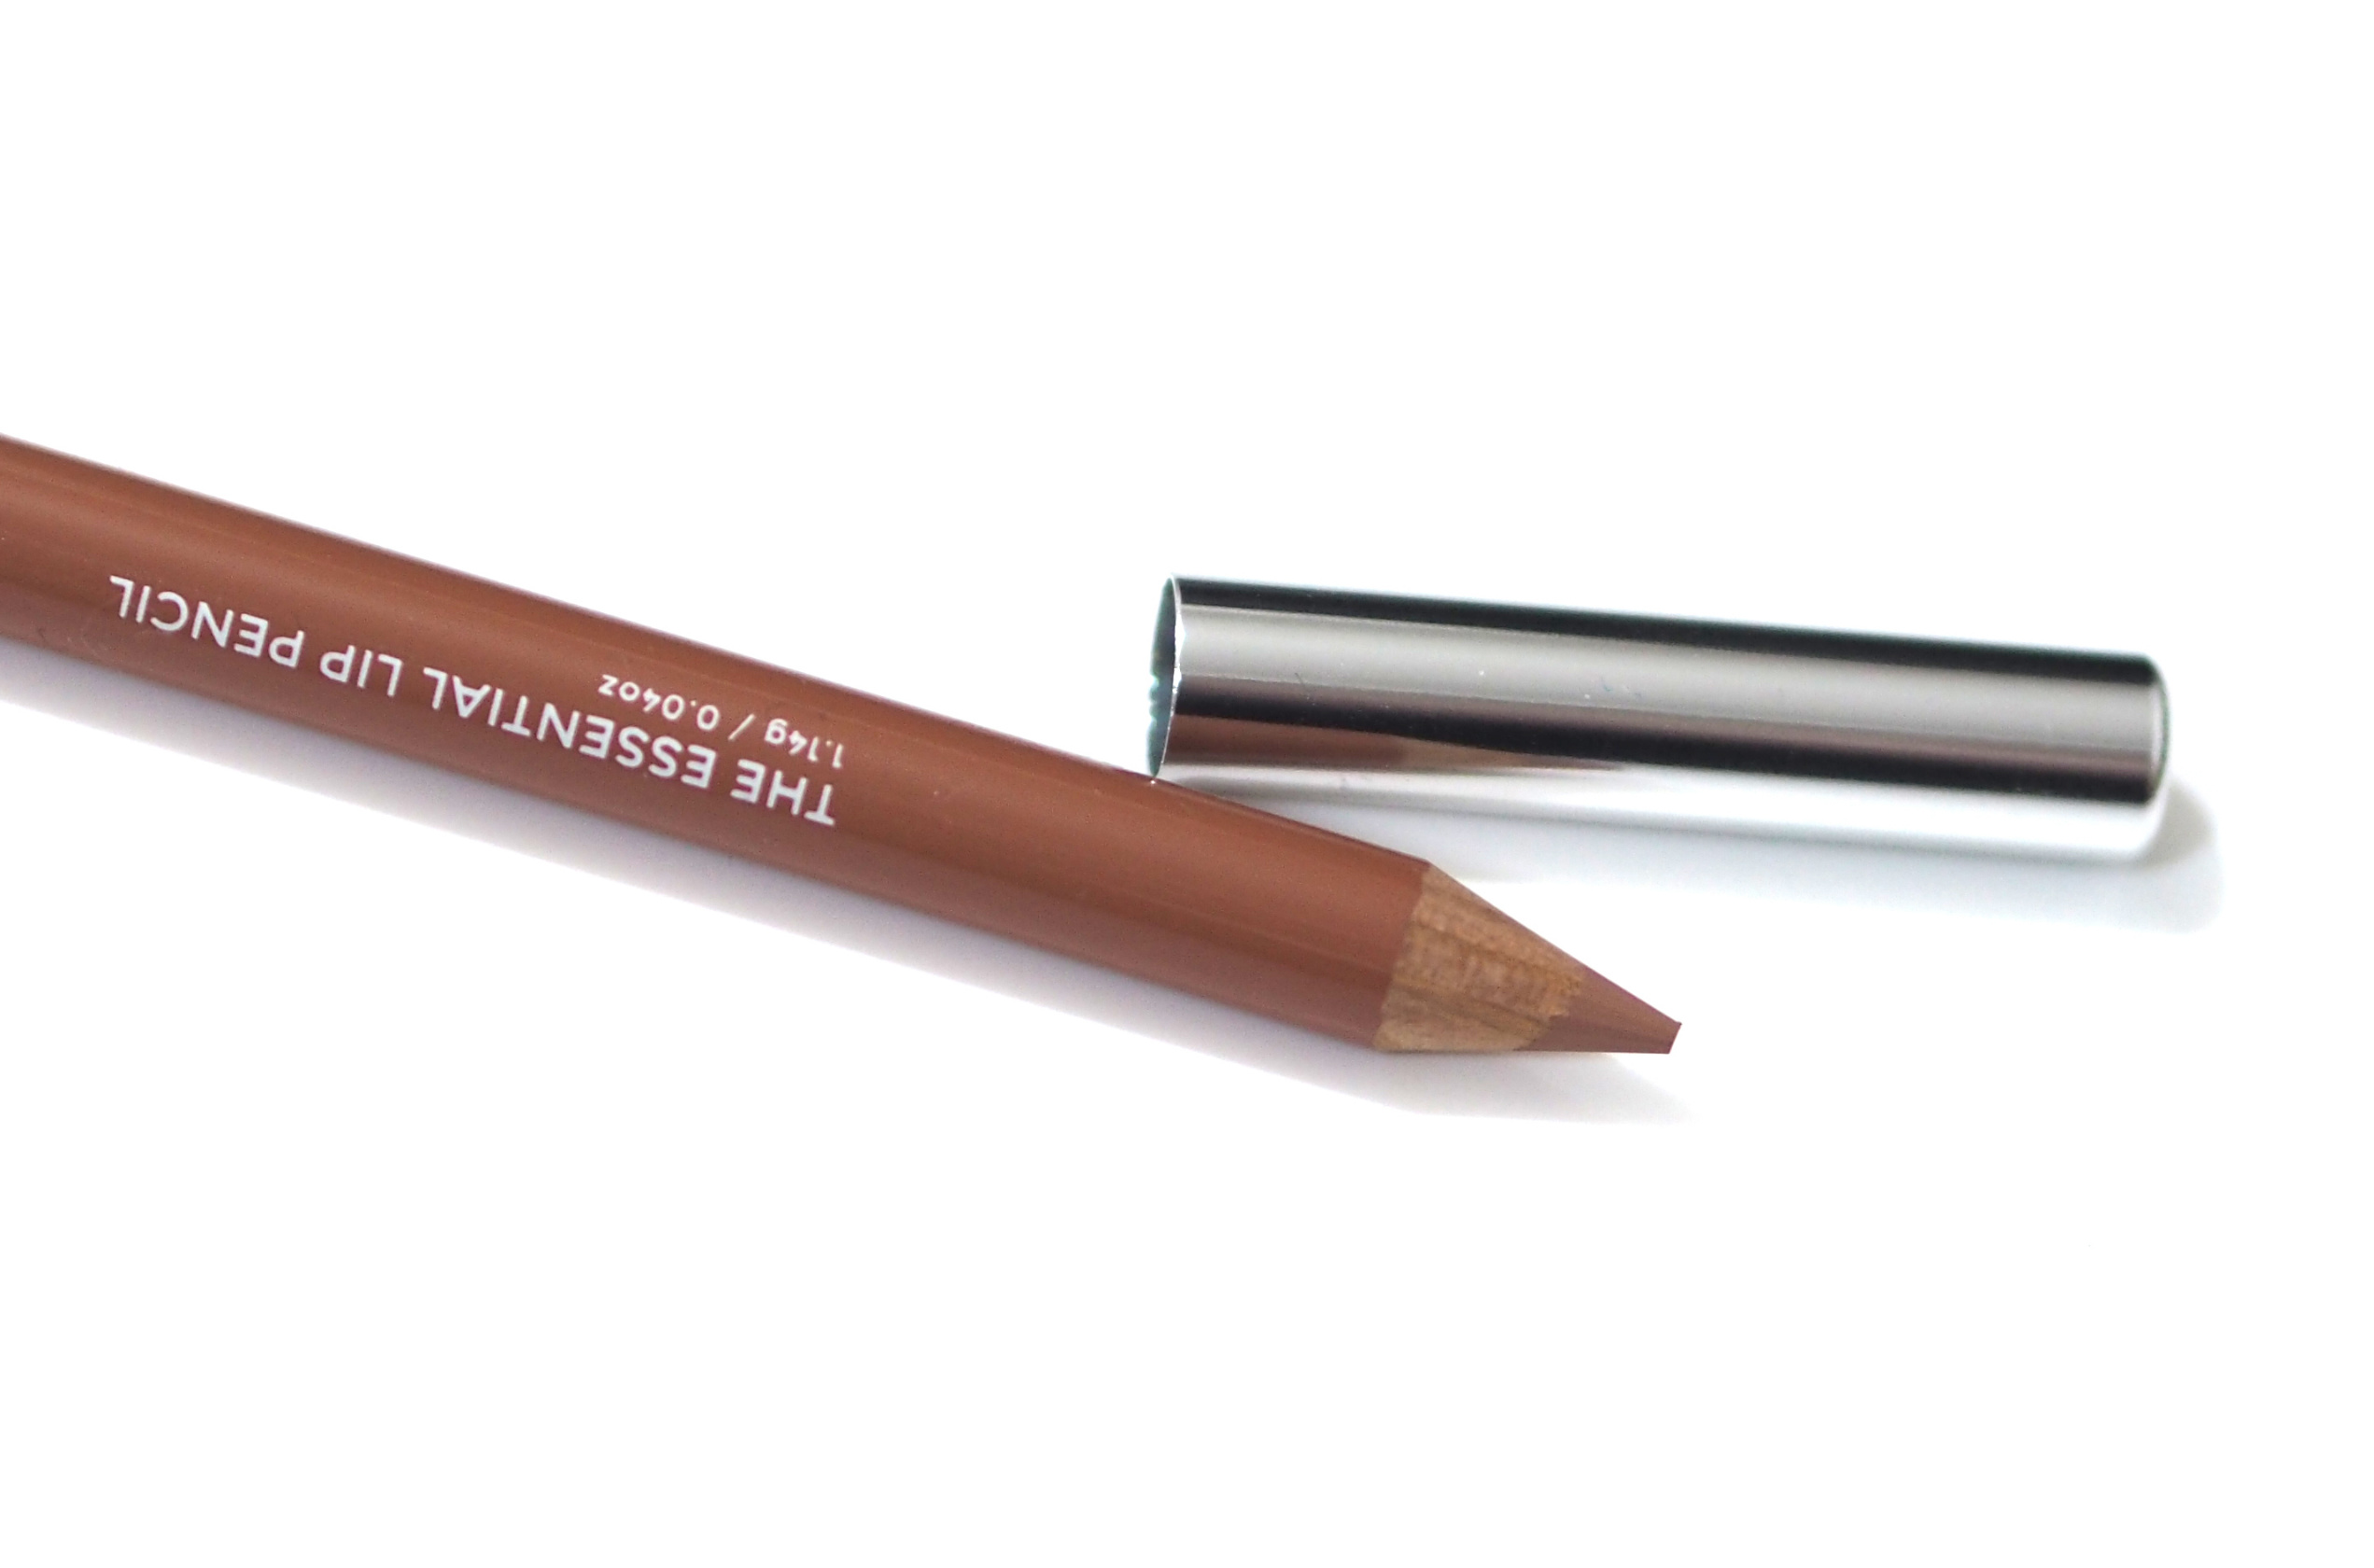 Wayne Goss Cosmetics The Essential Lip Pencil Review / Swatches